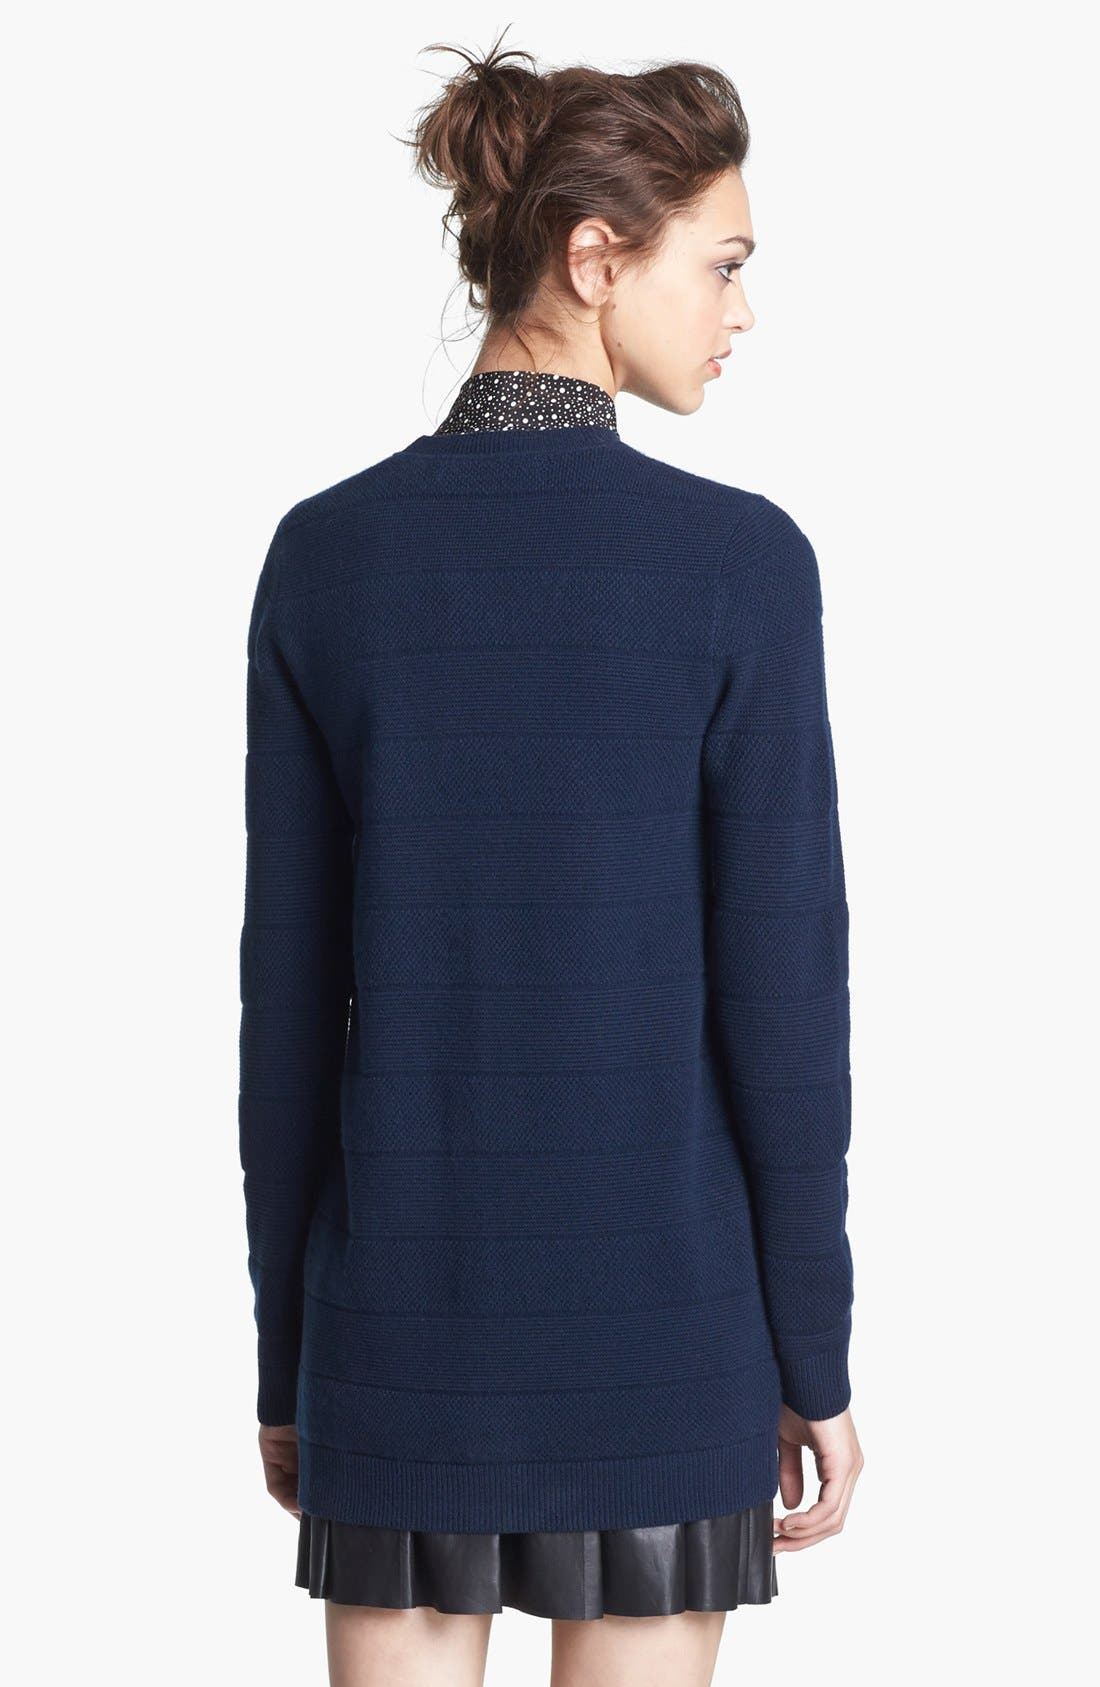 Alternate Image 3  - Miss Wu 'Polimero' Textured Stripe Cashmere Cardigan (Nordstrom Exclusive)